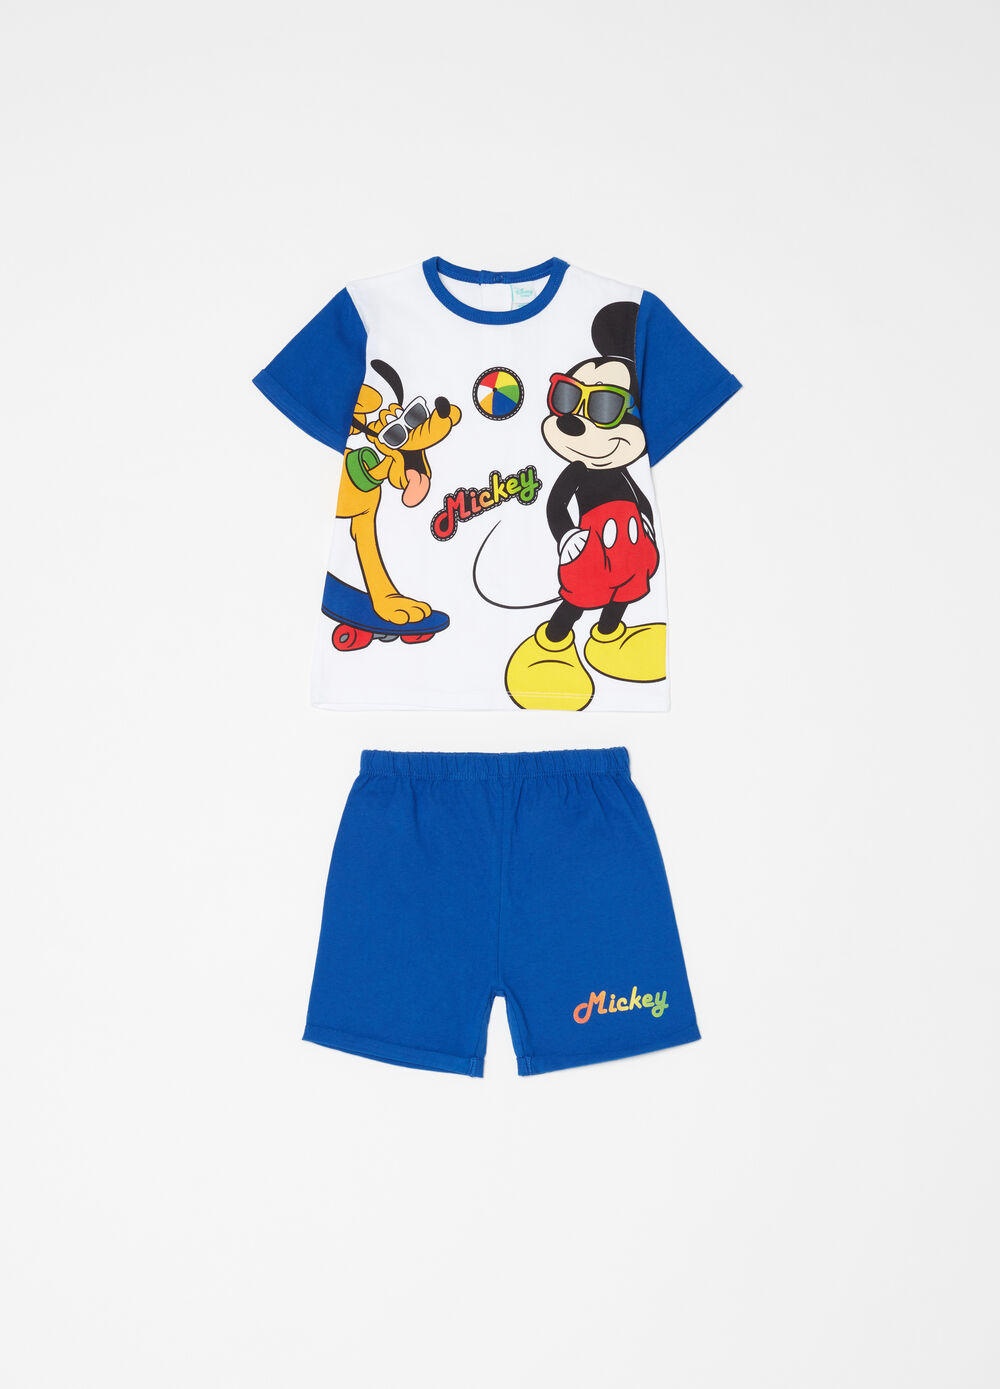 Mickey and Pluto short pyjamas